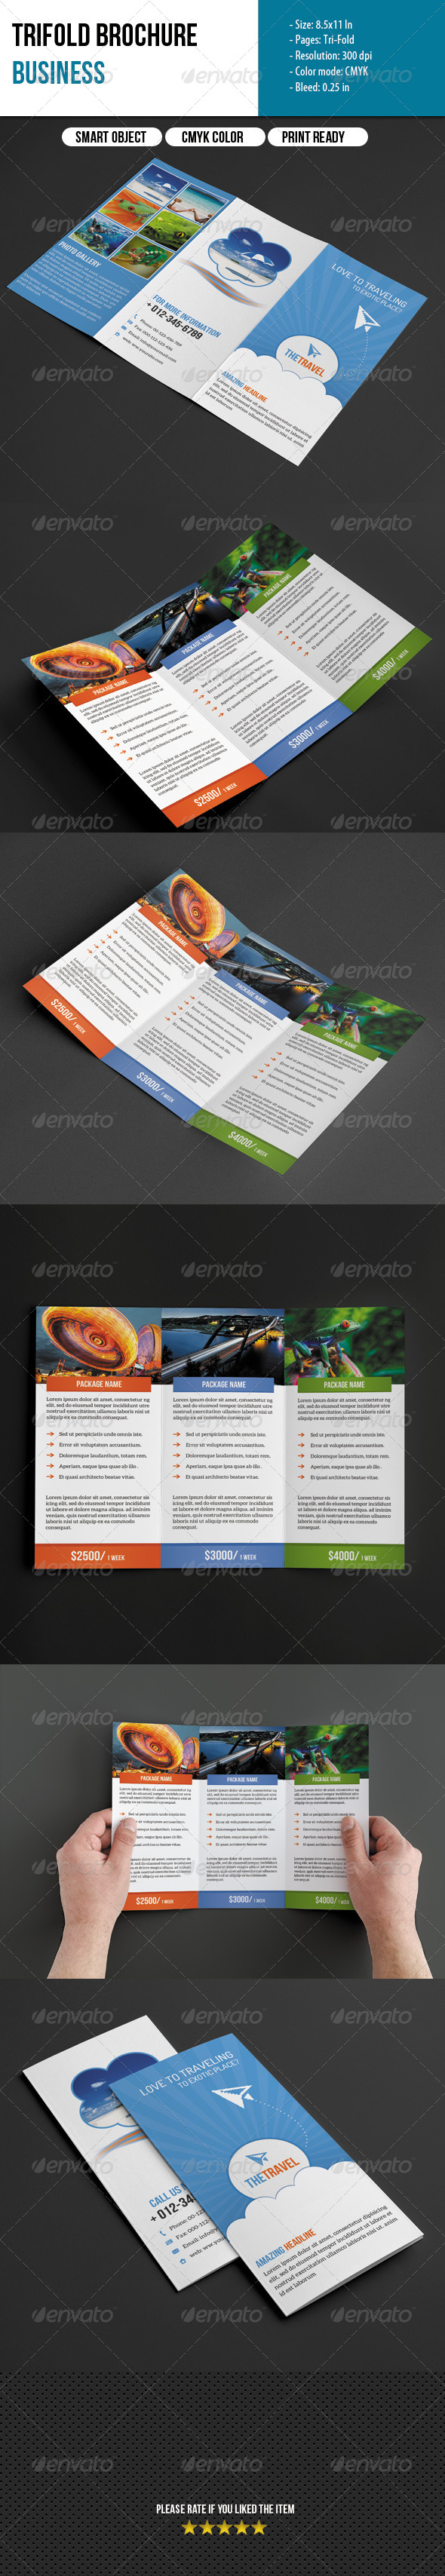 Trifold Brochure-Travel Business - Informational Brochures